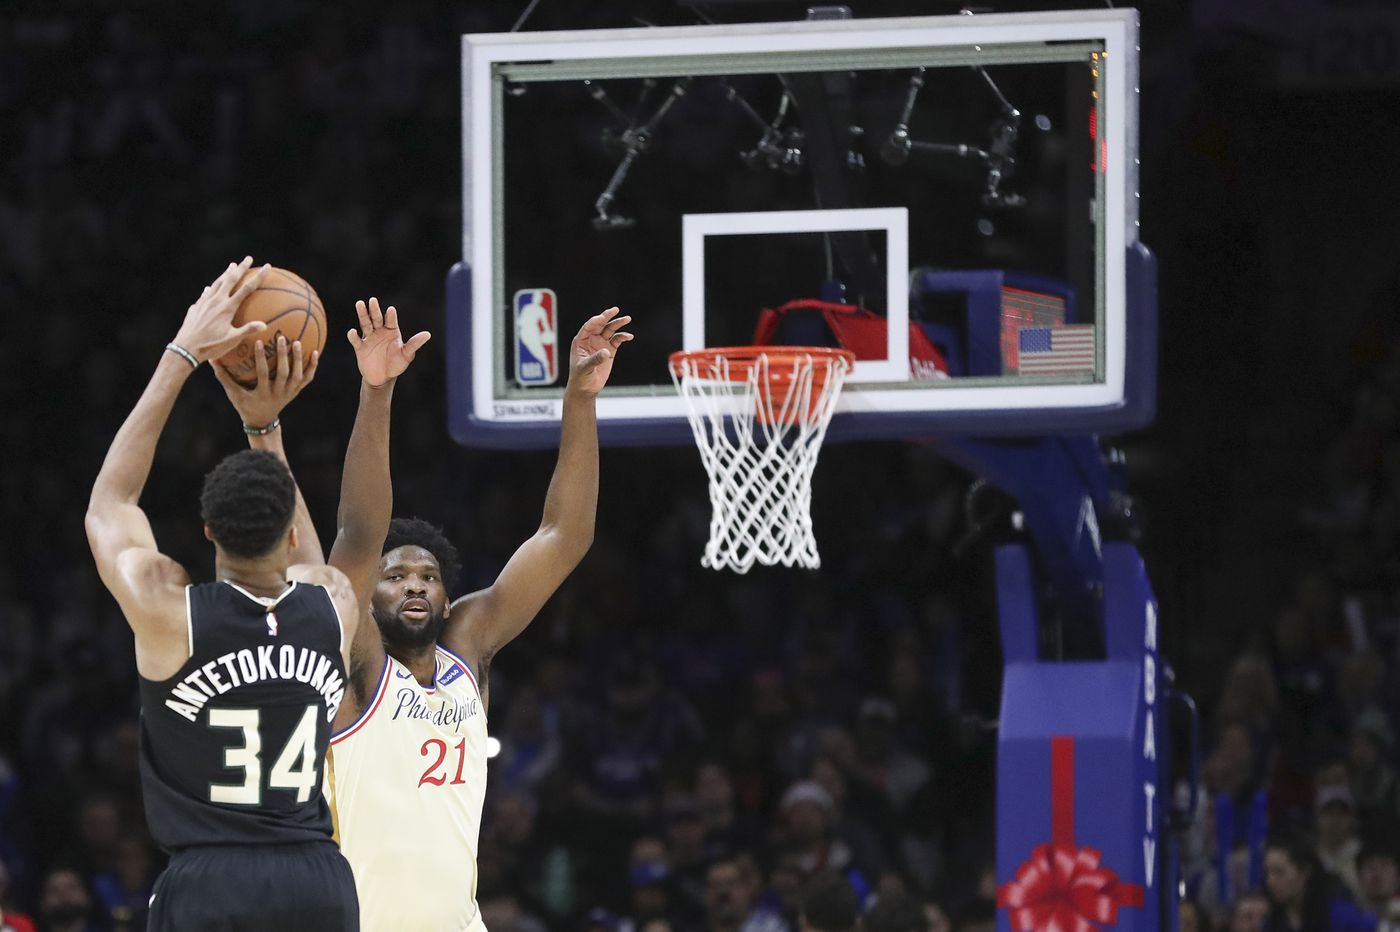 Joel Embiid's impact on Sixers defense will be felt during his absence